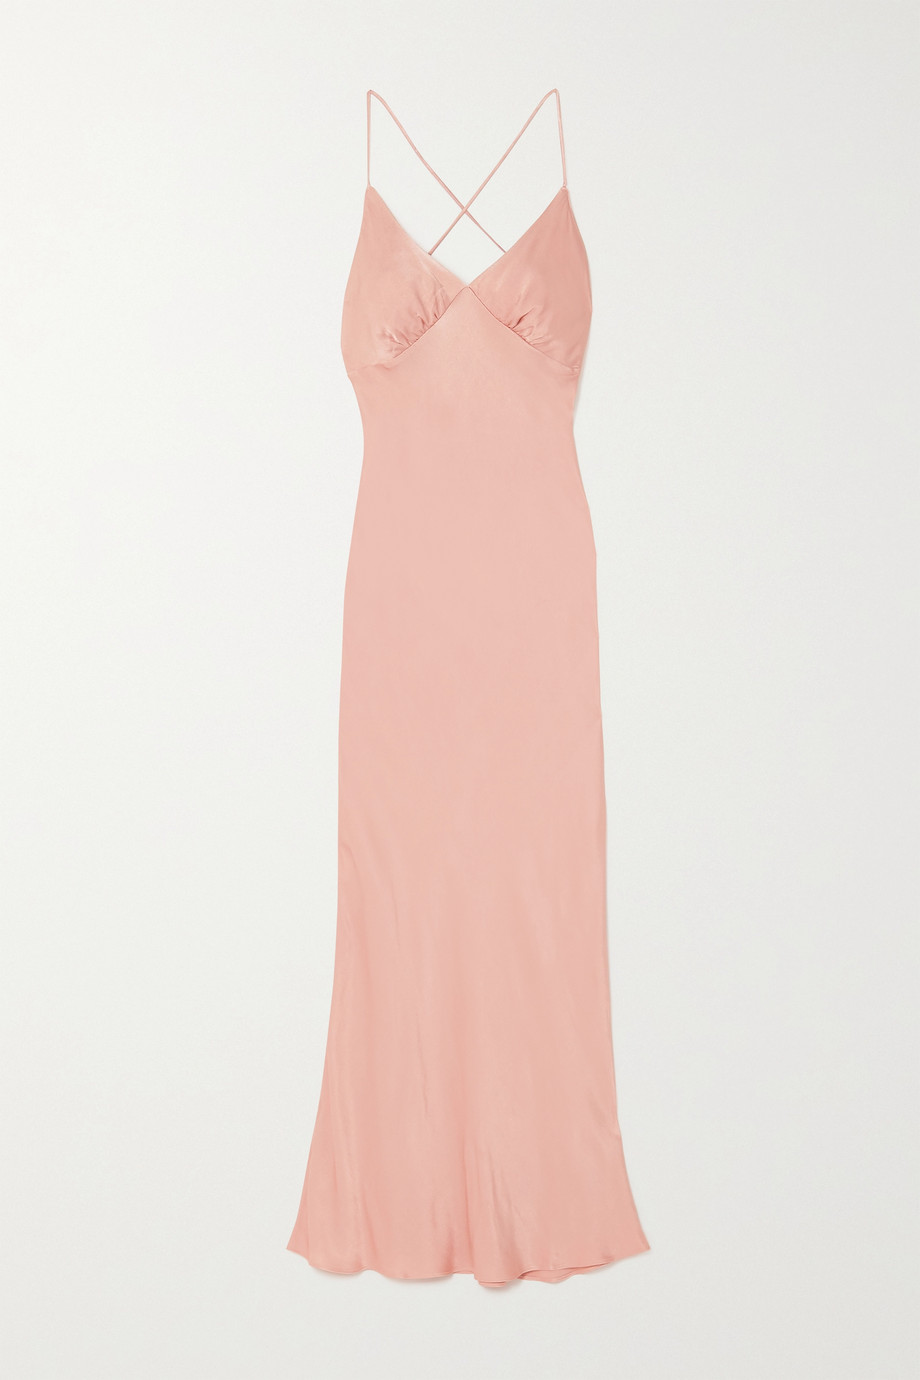 THE LINE BY K Florence satin dress